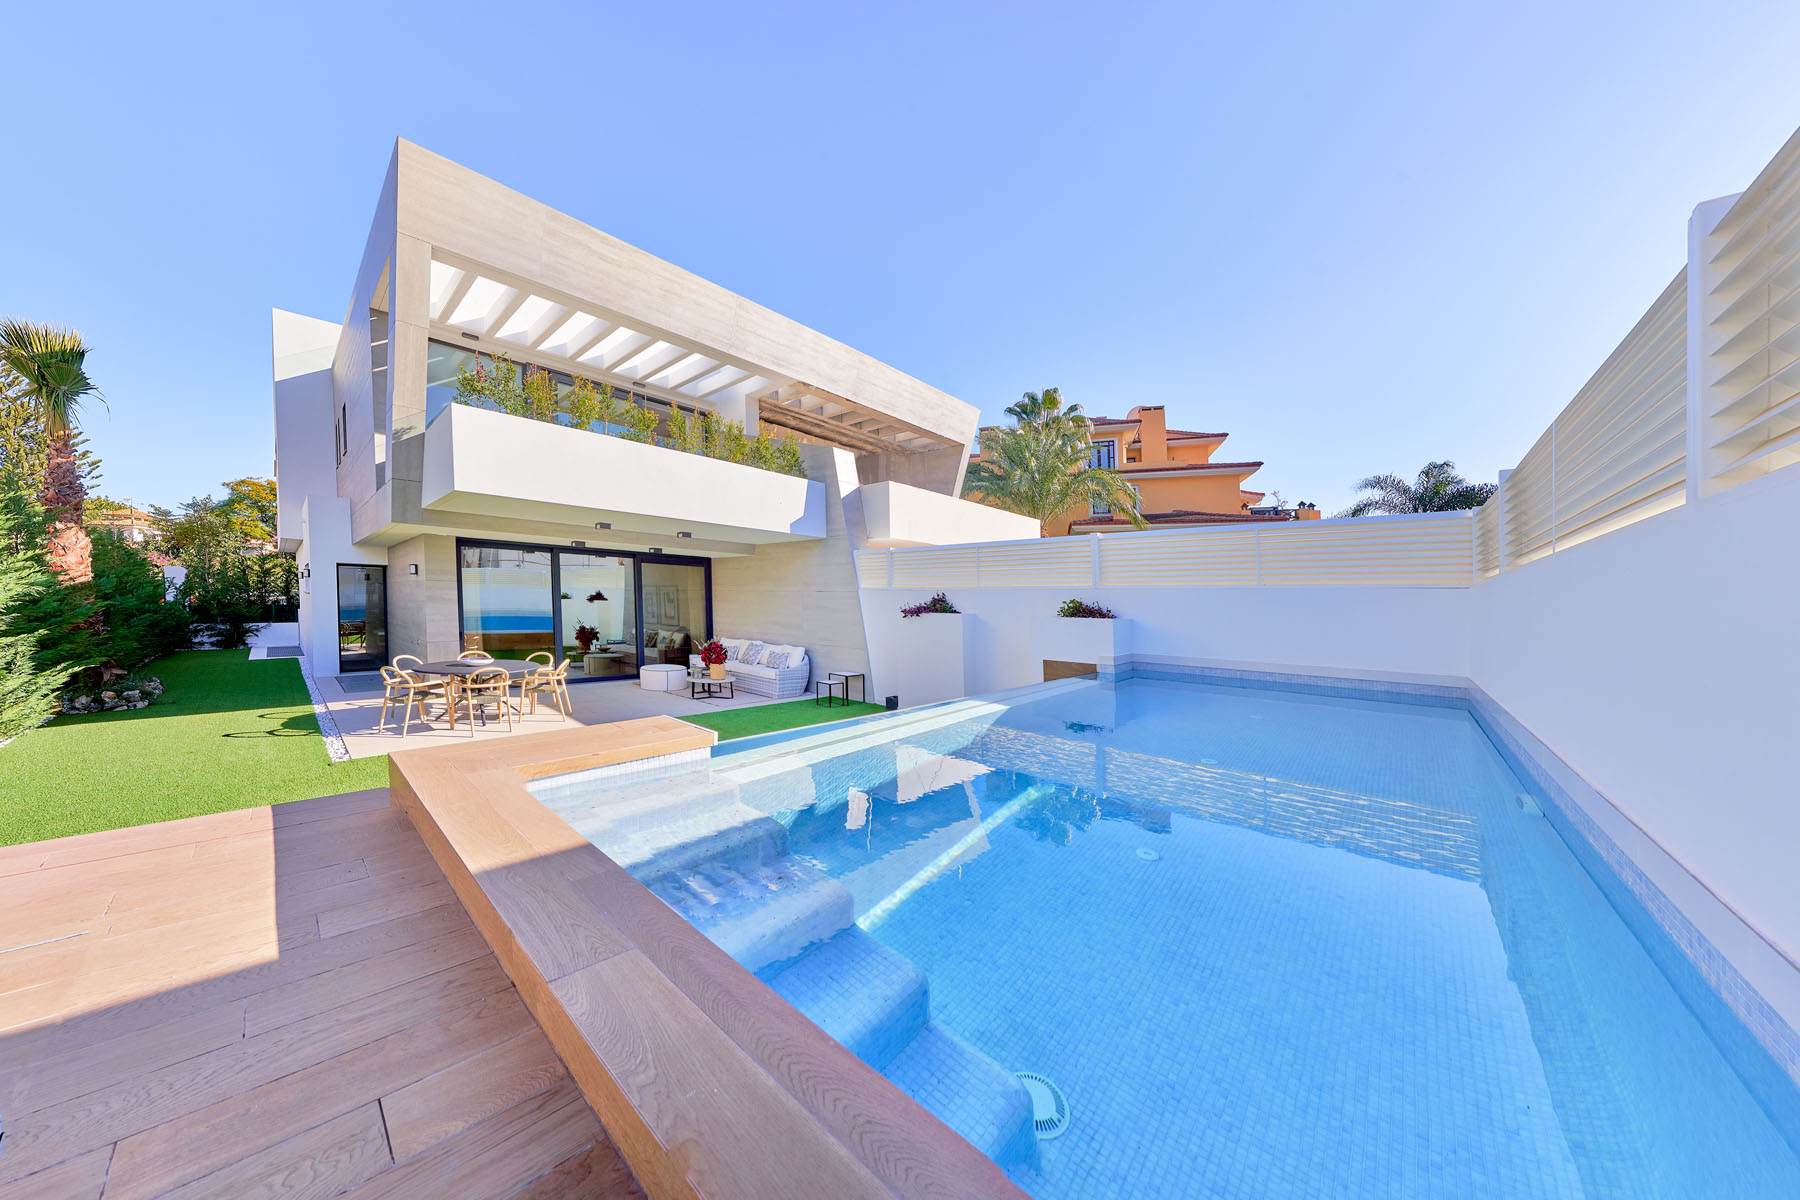 Stunning ultra modern 3 bedroom villa for sale within walking distance from Puerto Banus.